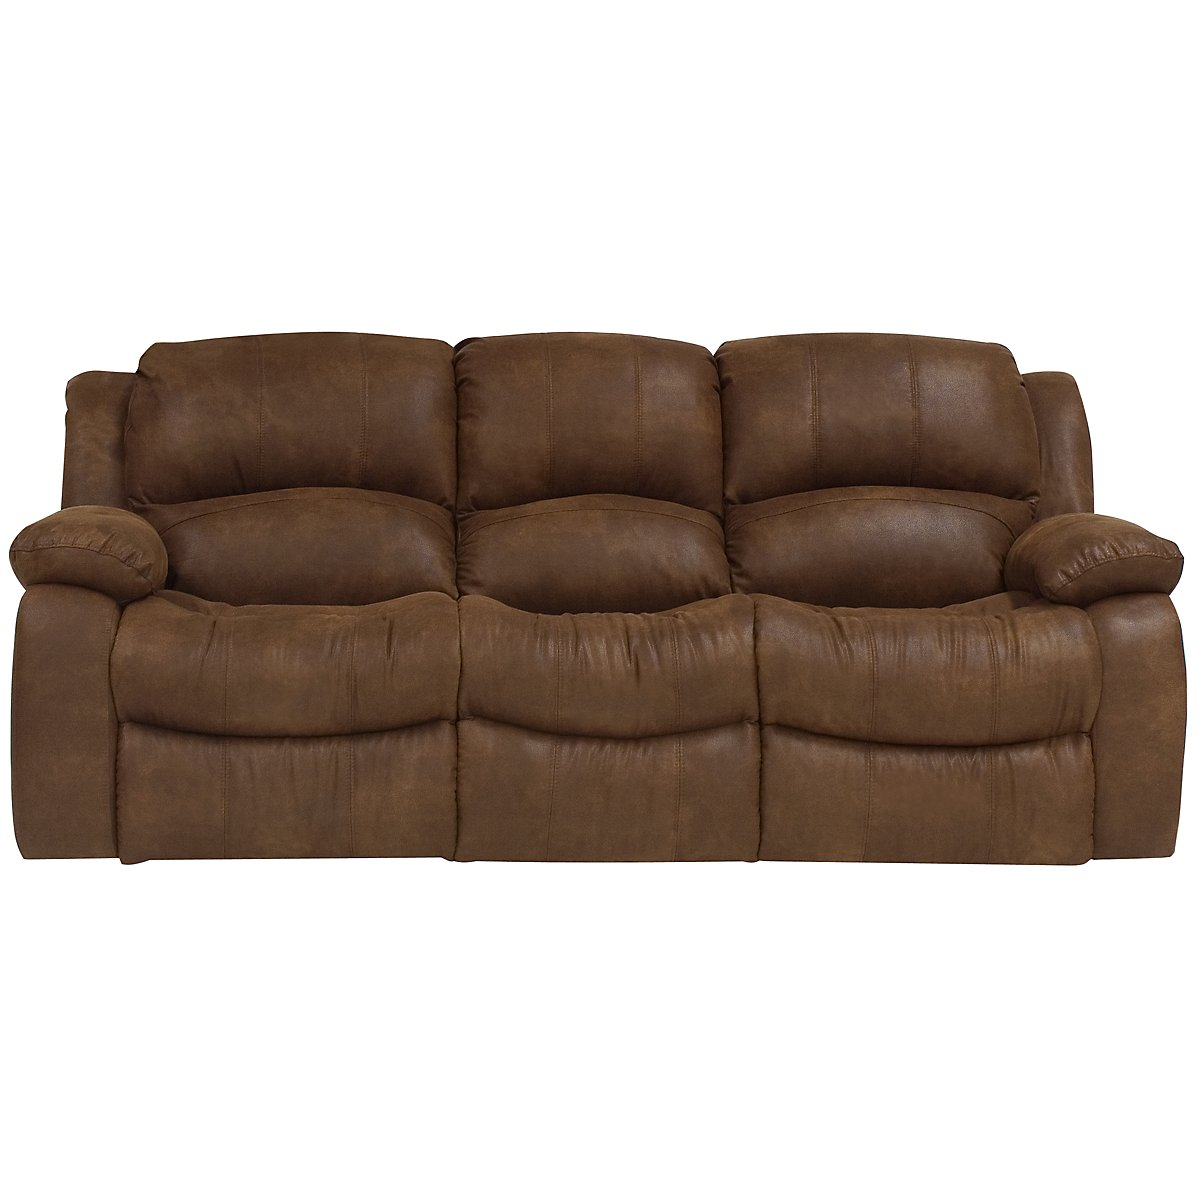 Microfiber power reclining sofa hereo sofa Chocolate loveseat